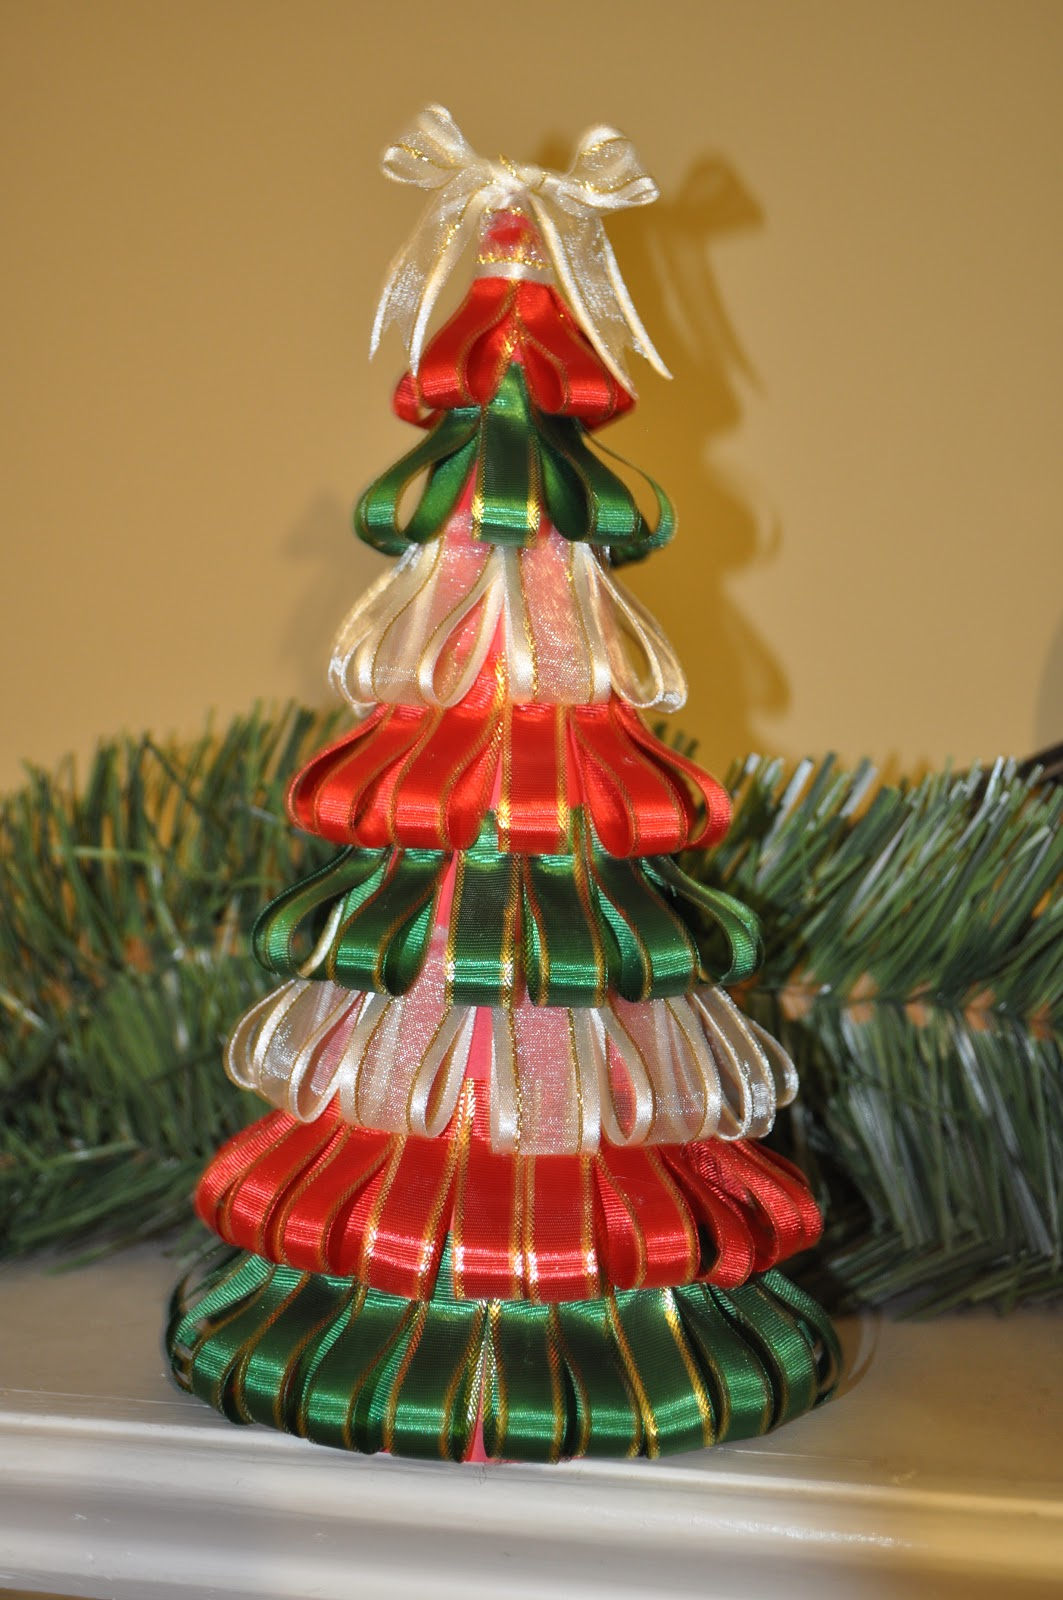 The Crafty Crystal: 12 Days of Christmas Crafts #5: Ribbon ...